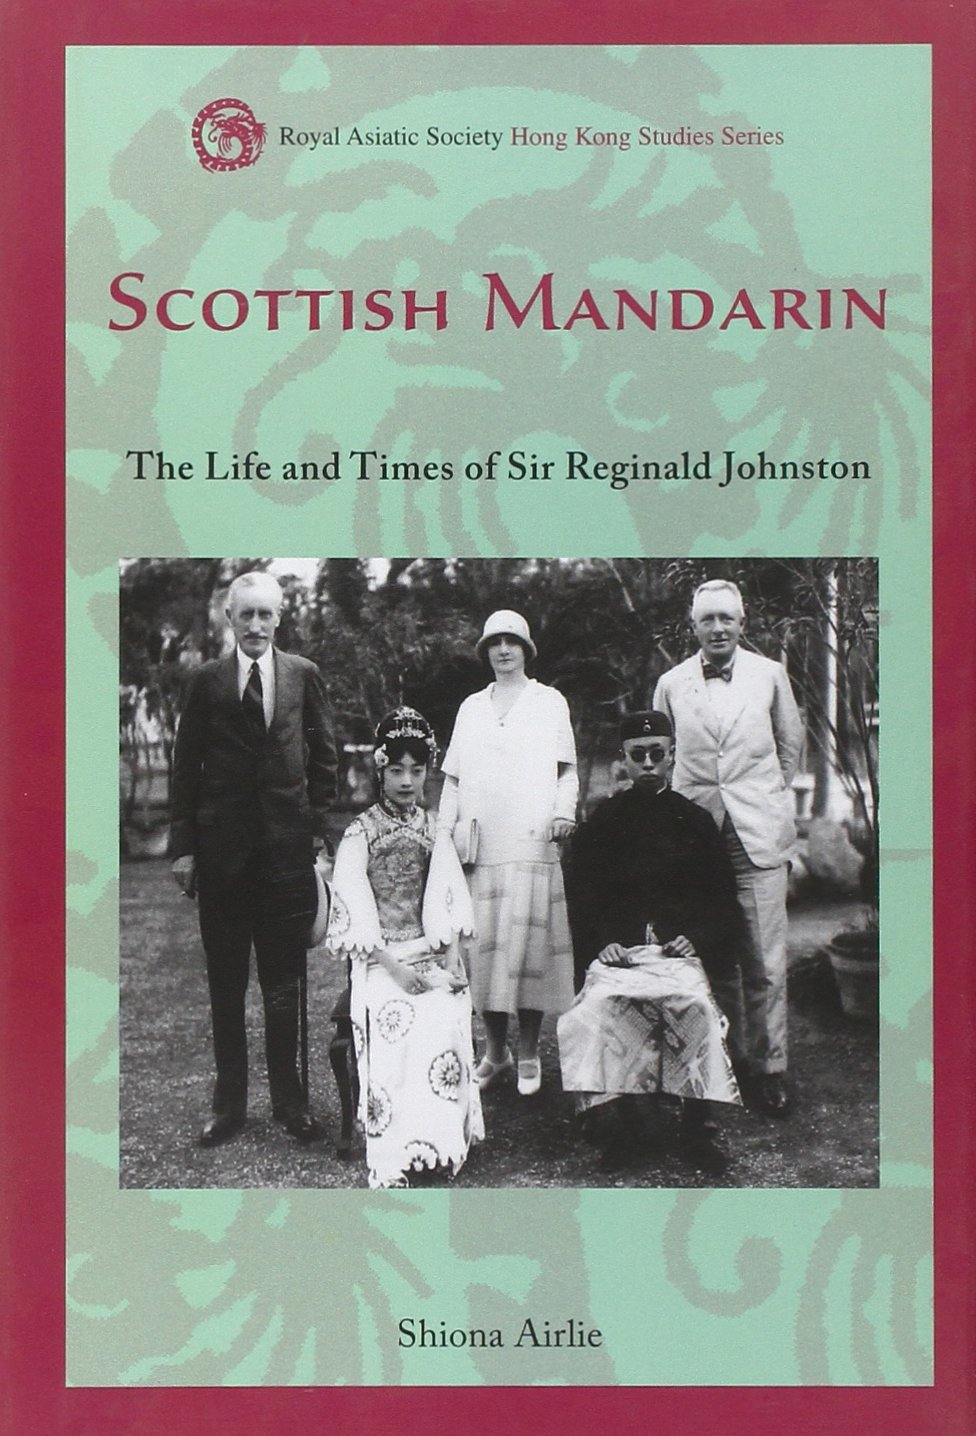 Scottish Mandarin: The Life and Times of Sir Reginald Johnston (Royal Asiatic Society Hong Kong Studies Series) PDF